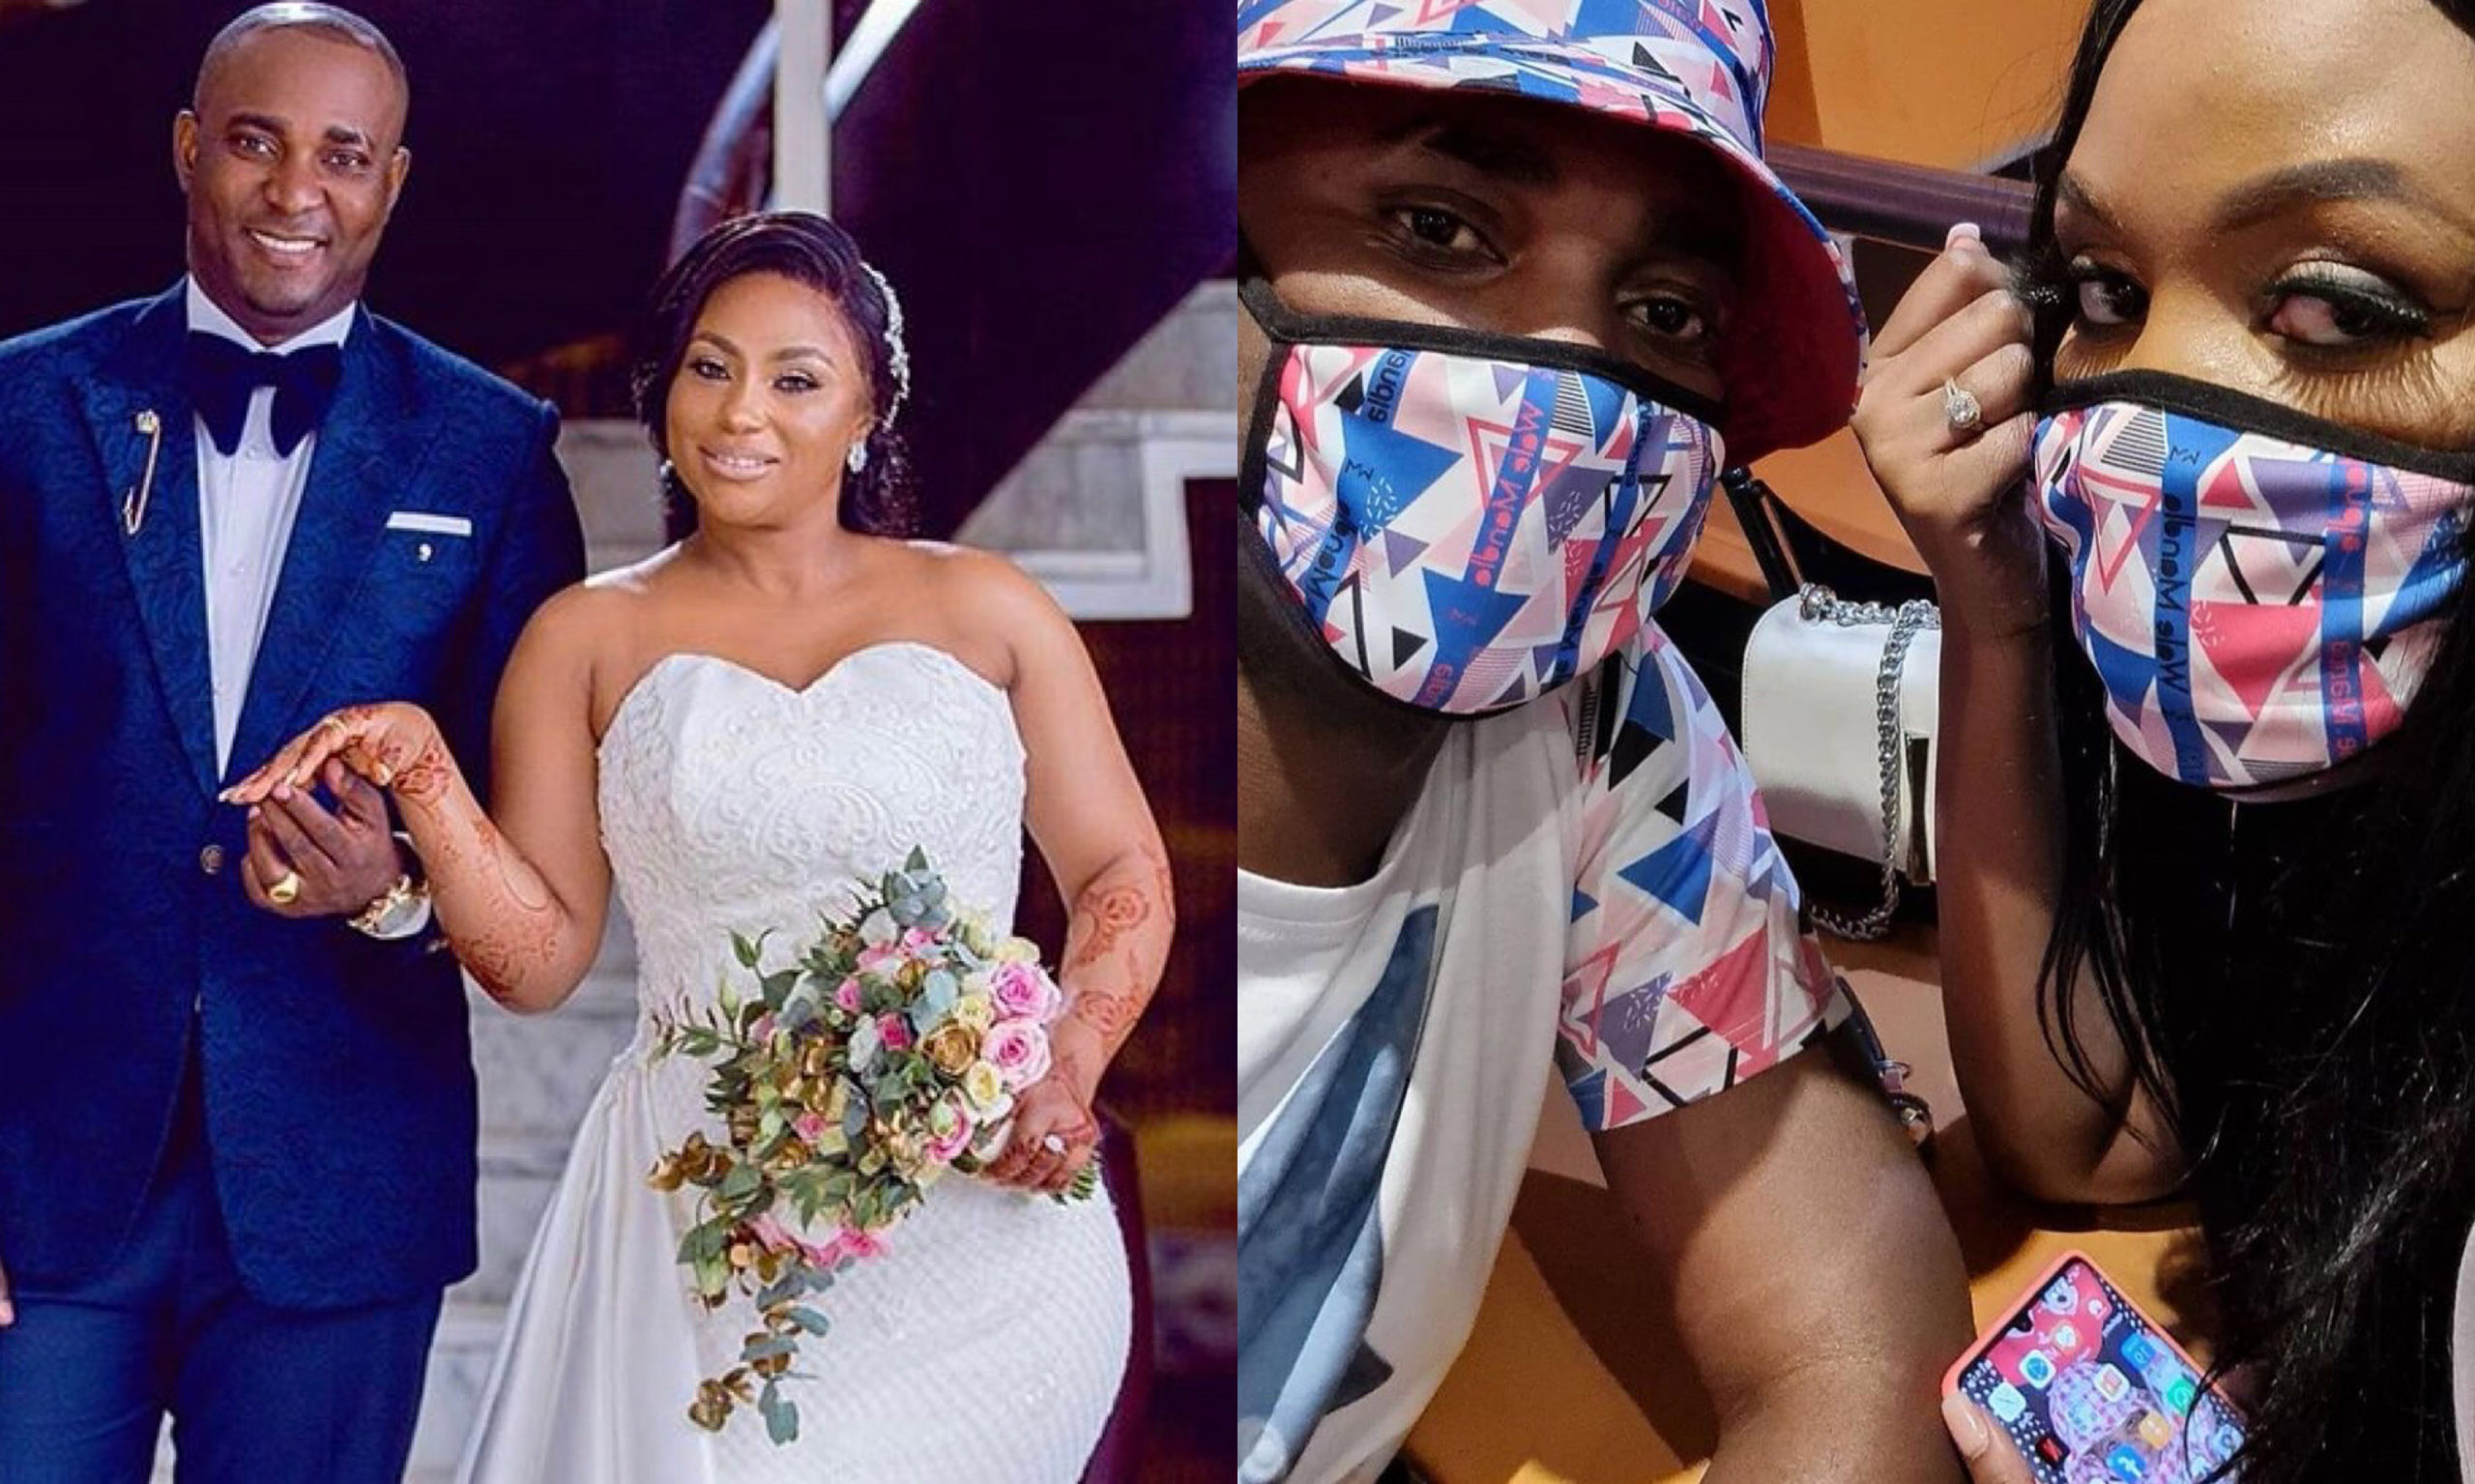 Wueh! Esma Platnumz ex-husband throwing shade after successfully reuniting with 1st wife